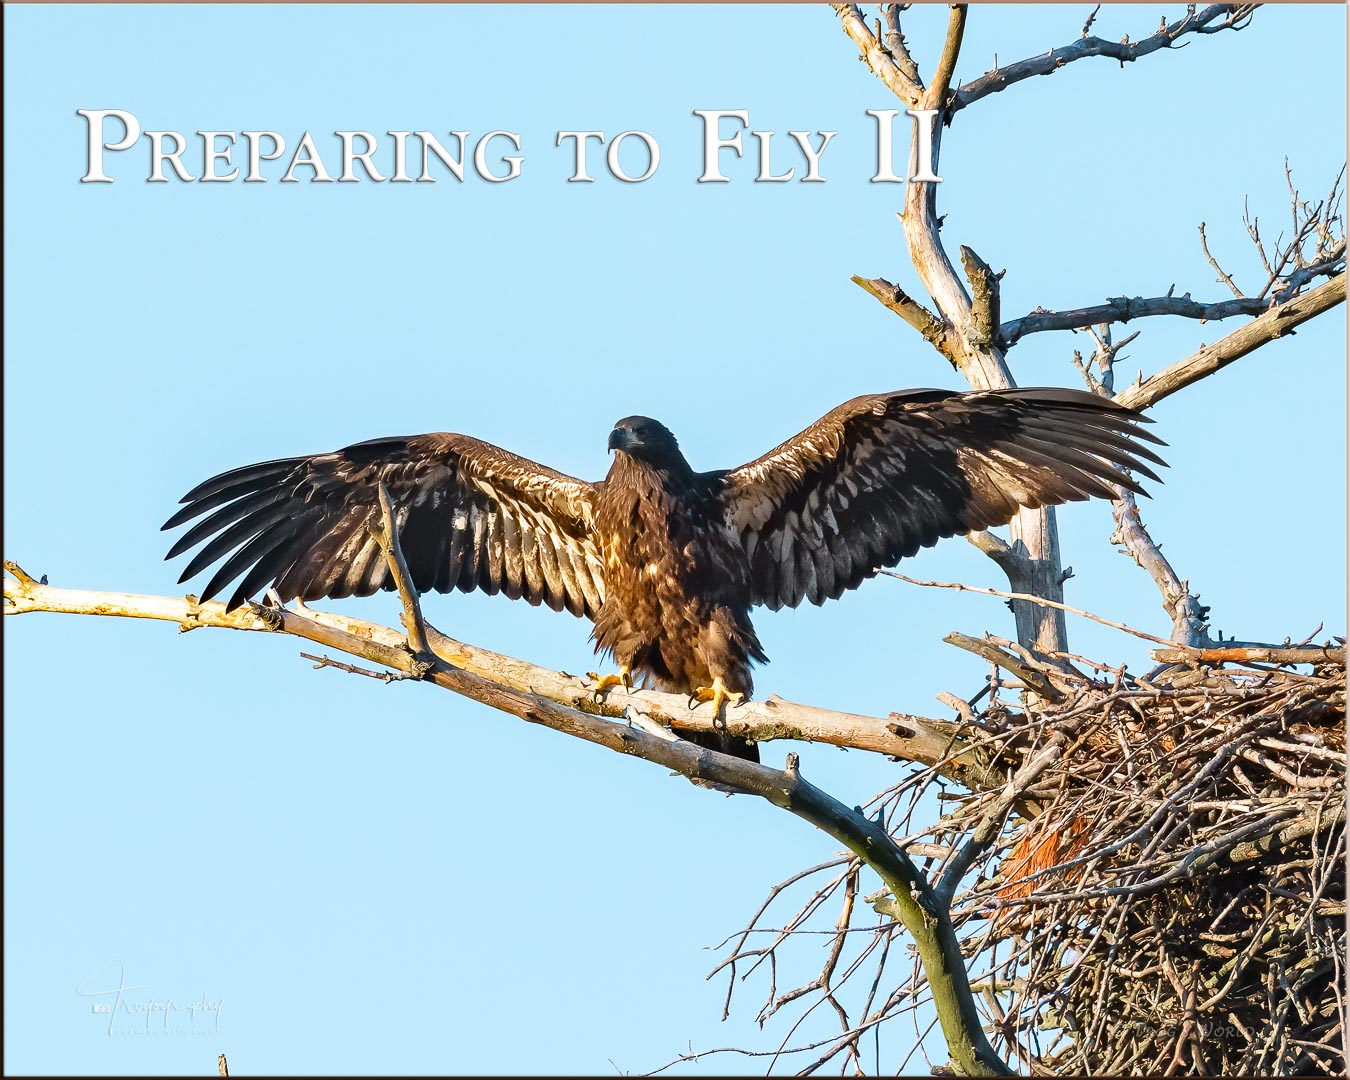 Eagle branching and preparing to fly